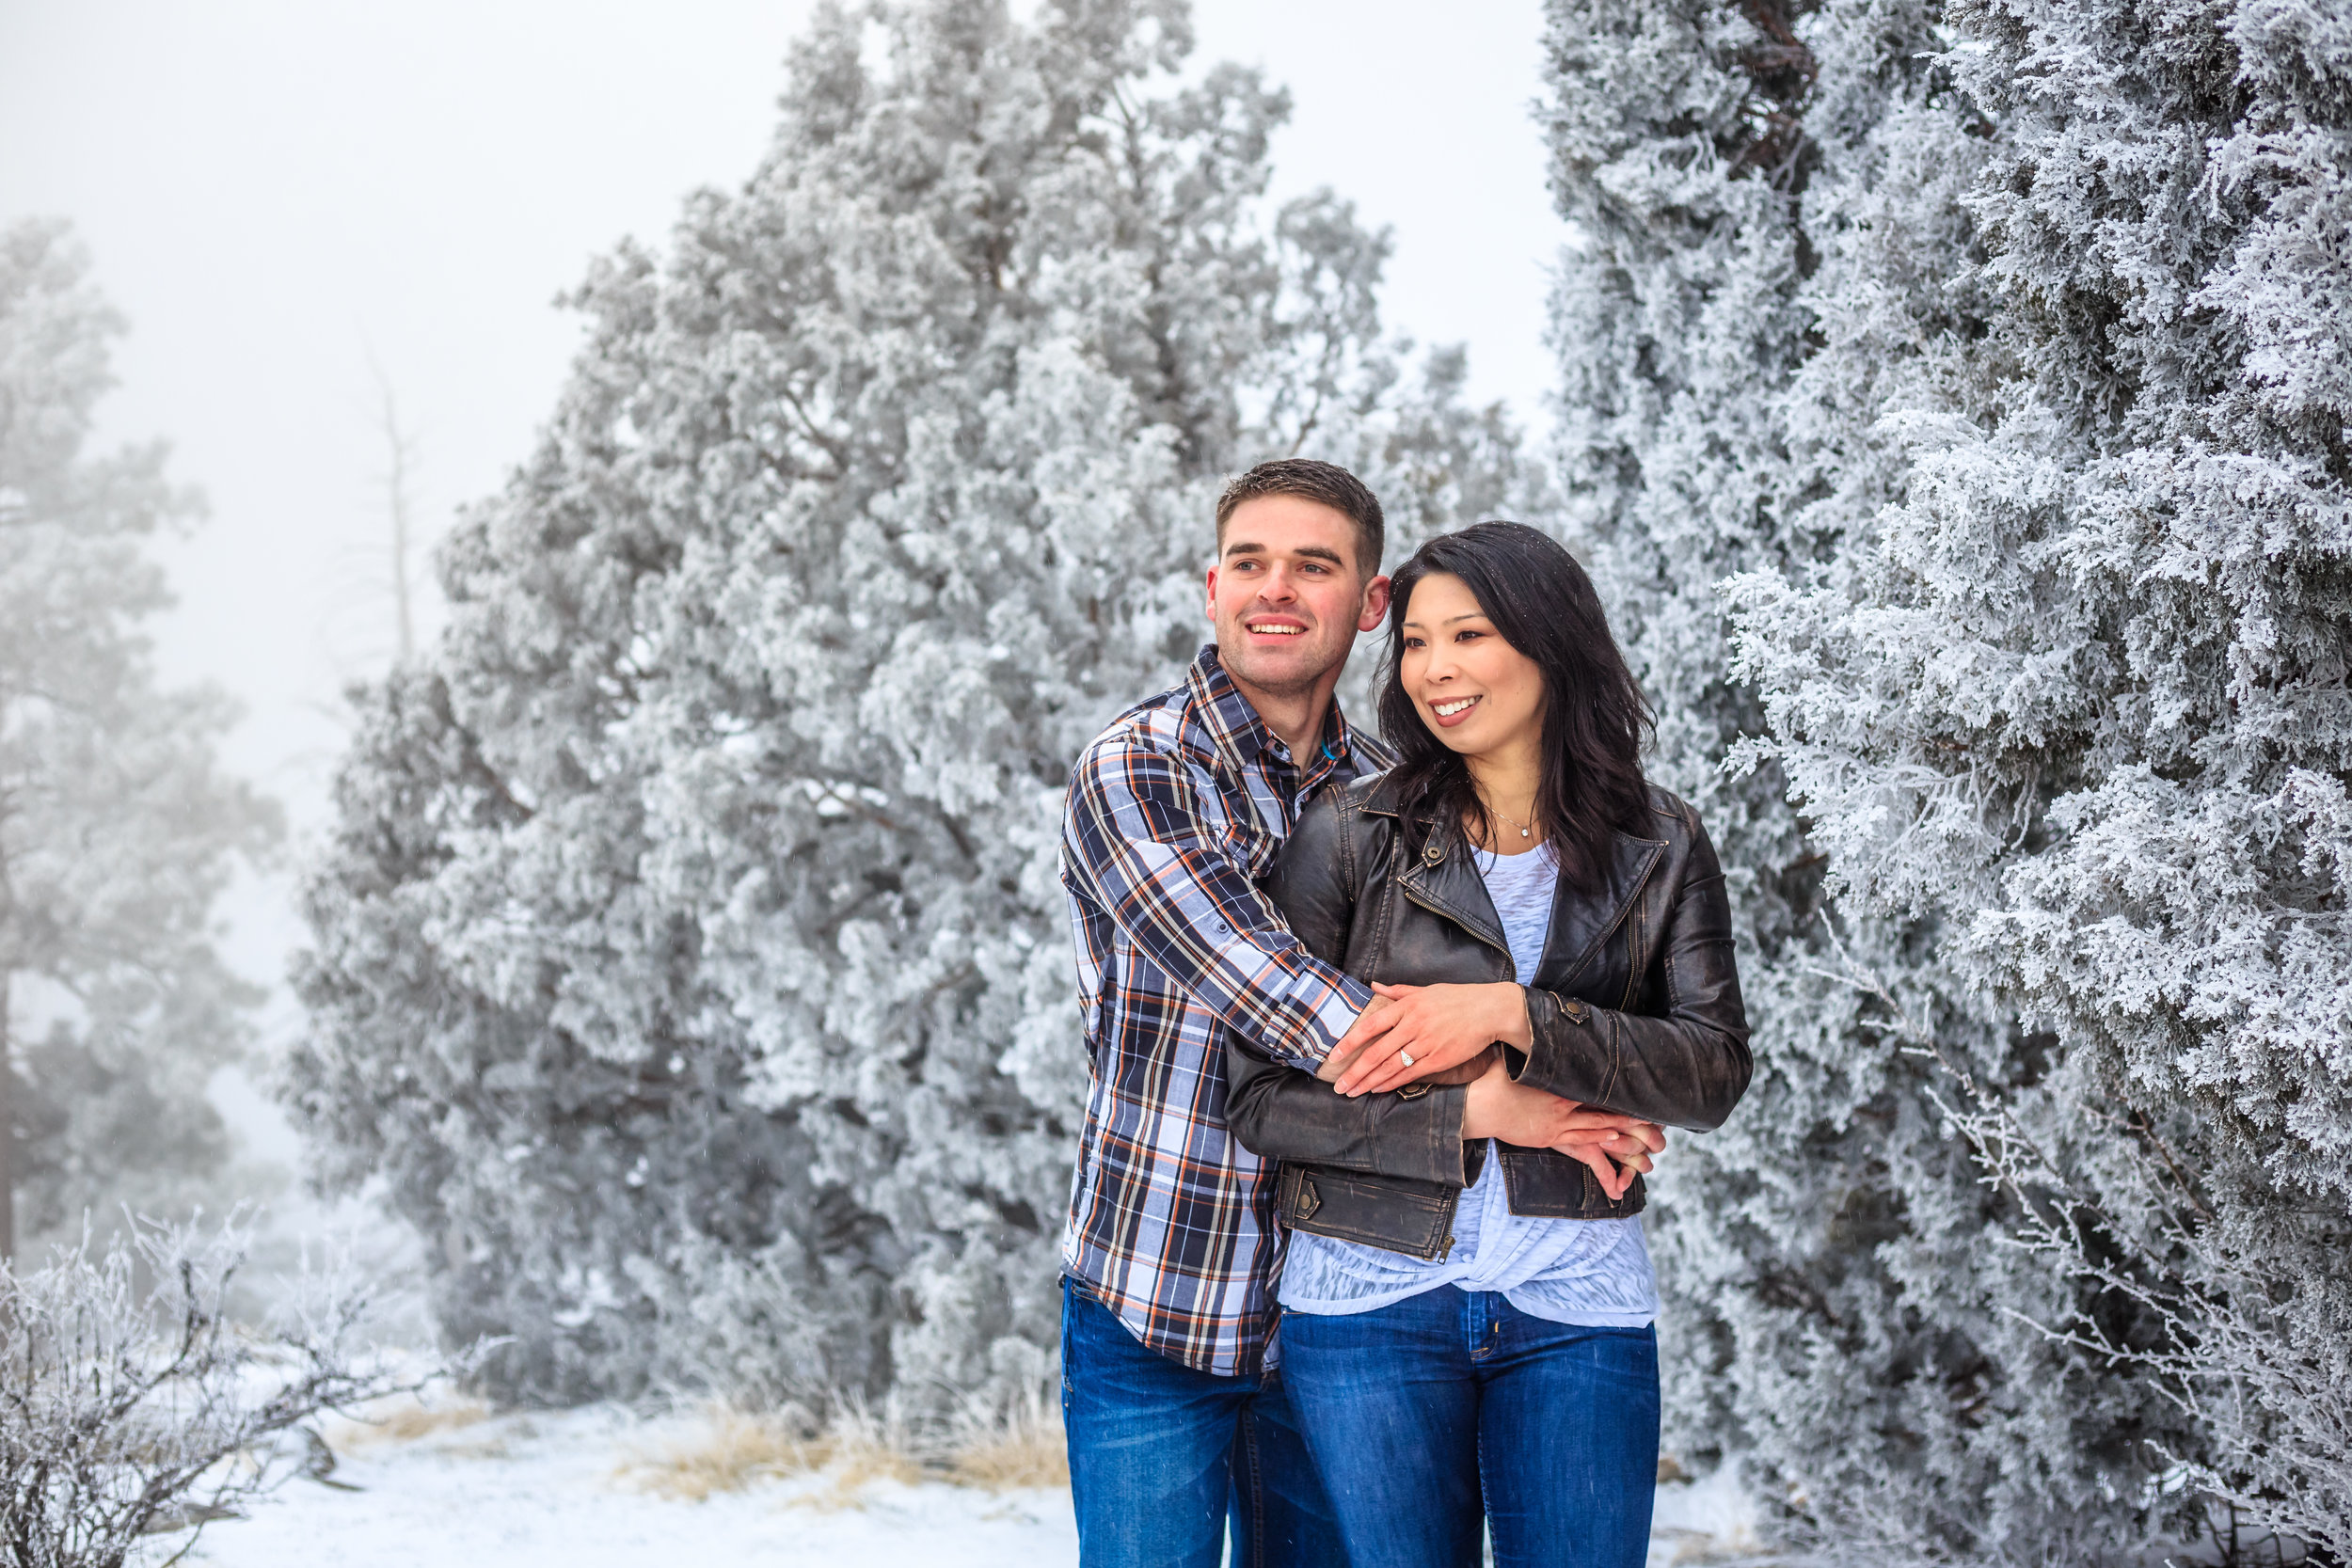 Allison & Jake - Morrison, CO